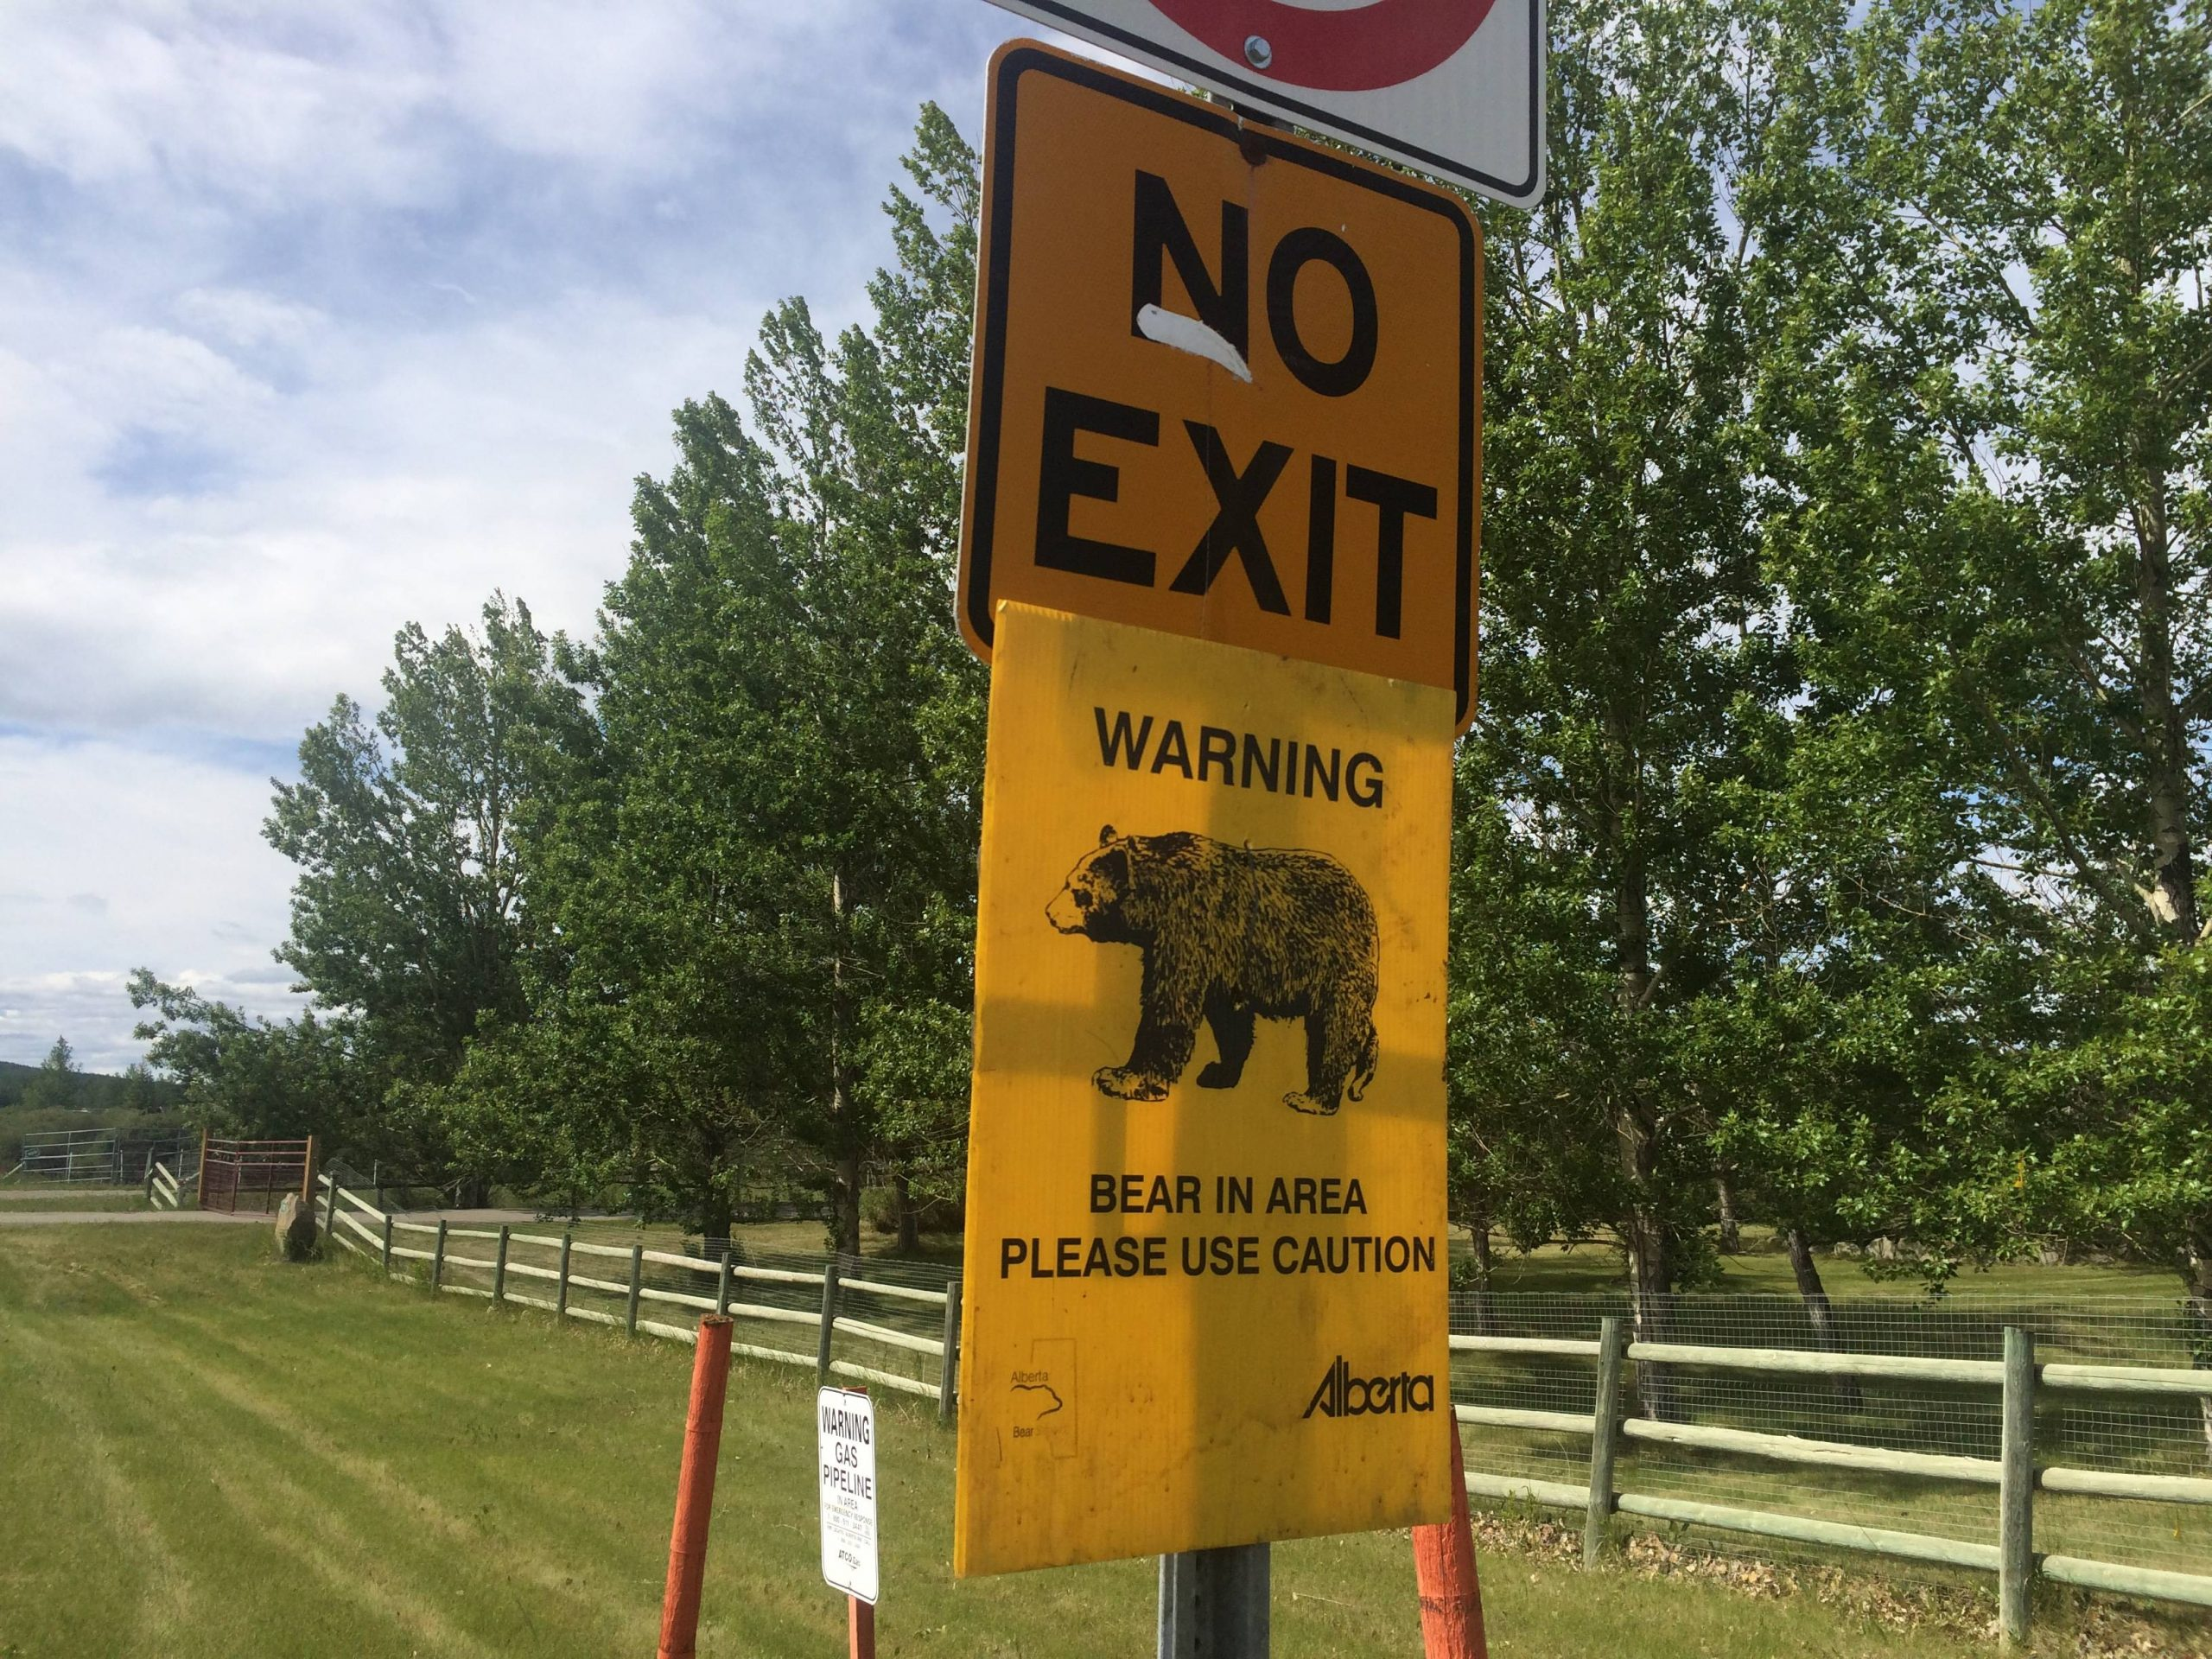 BearSmart Wood Buffalo Gives Tips To Avoid Bear Encounters